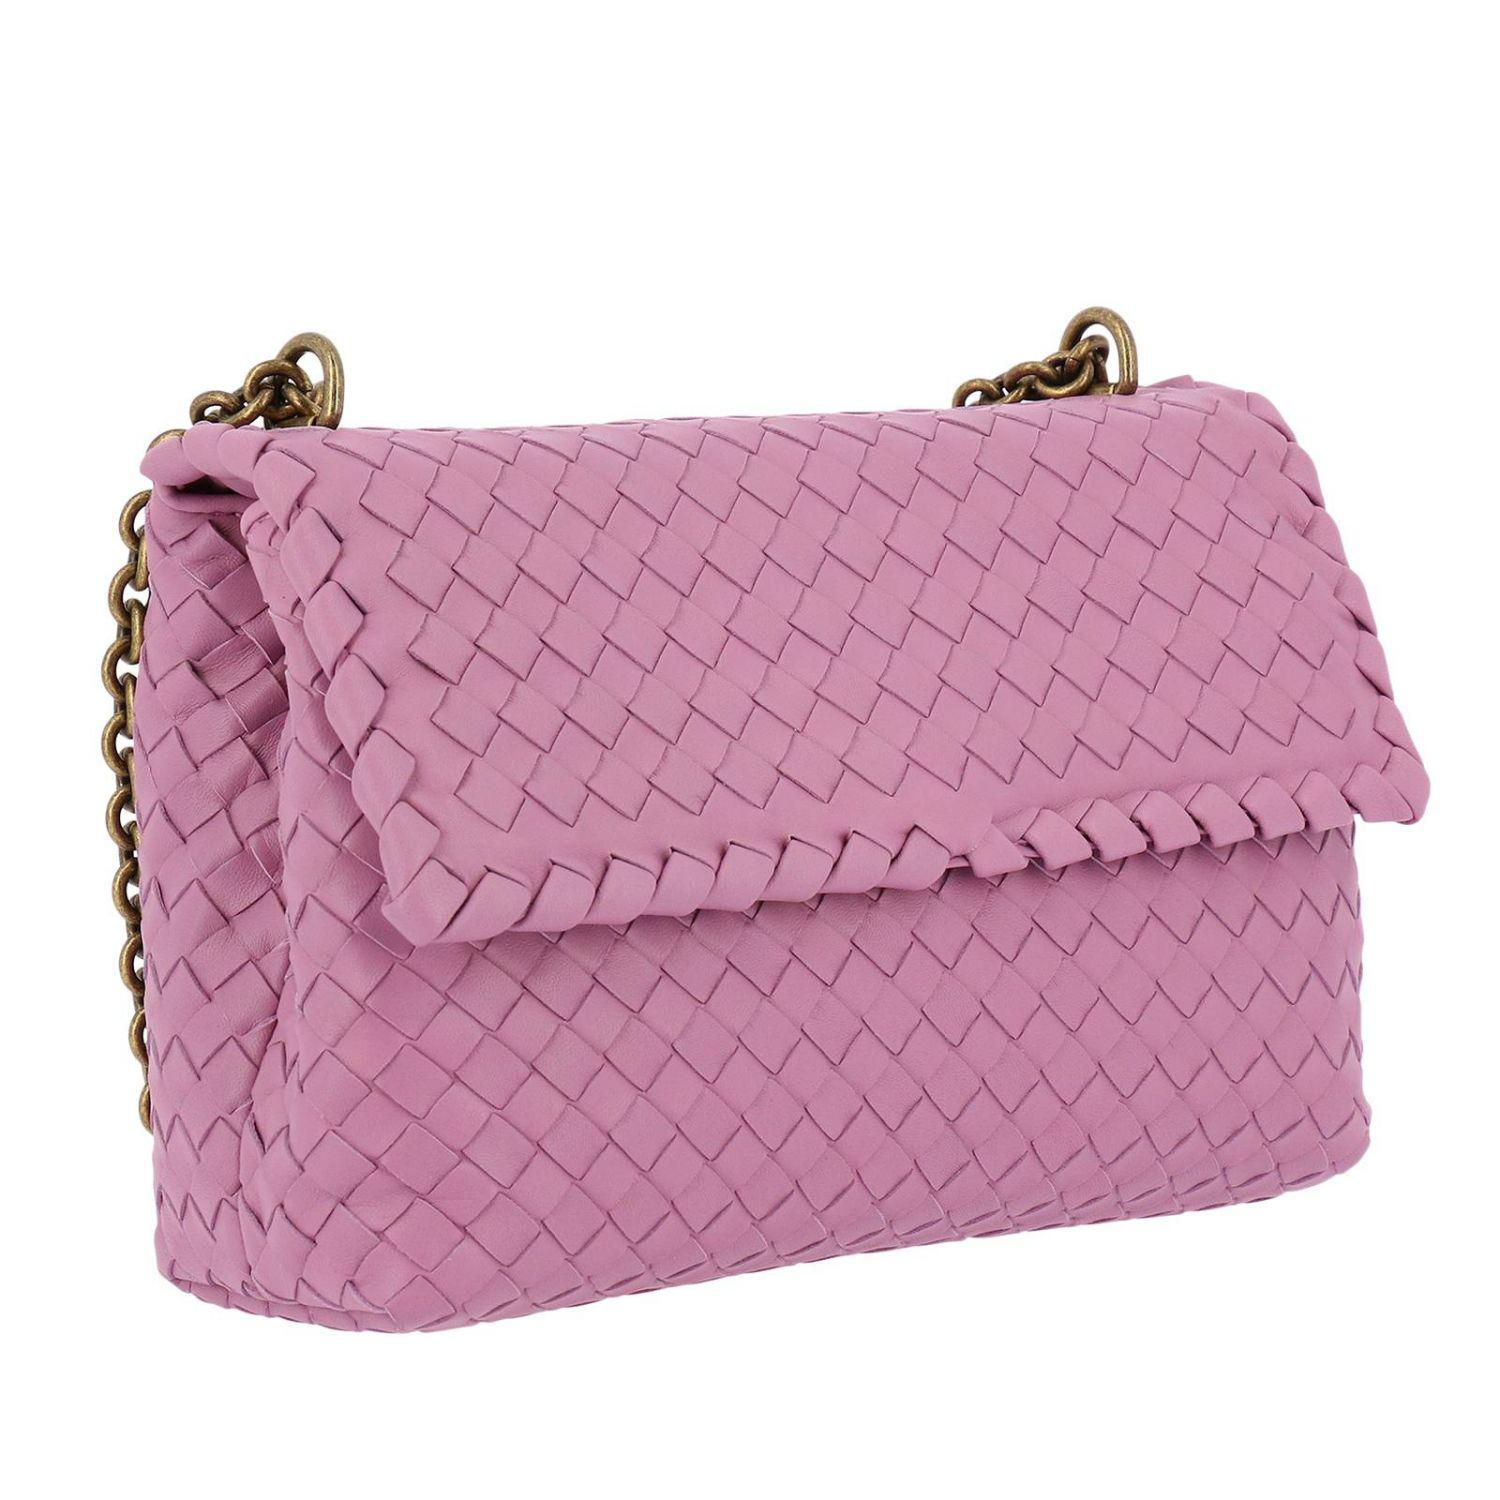 aec1a8974448 Bottega Veneta - Purple Crossbody Bag Olimpia Small With Sliding Chain  Shoulder Strap And Woven Pattern. View fullscreen